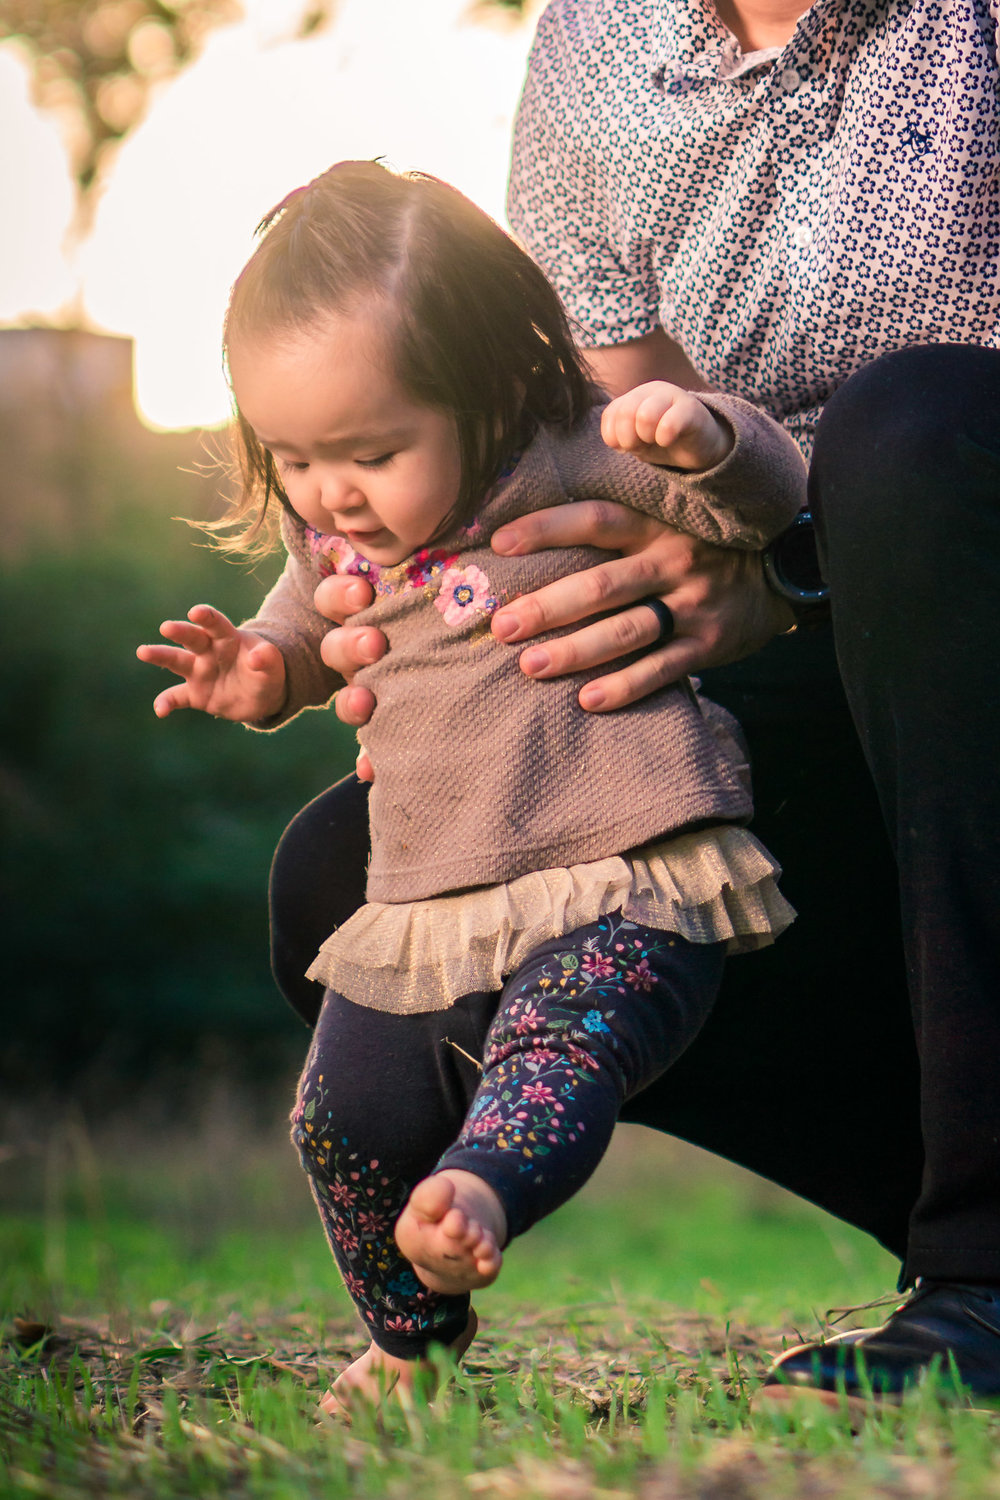 Portrait of a cute Little baby girl learning to walkin the grass on the Juanita Cooke Trail in Fullerton during a family portrait session